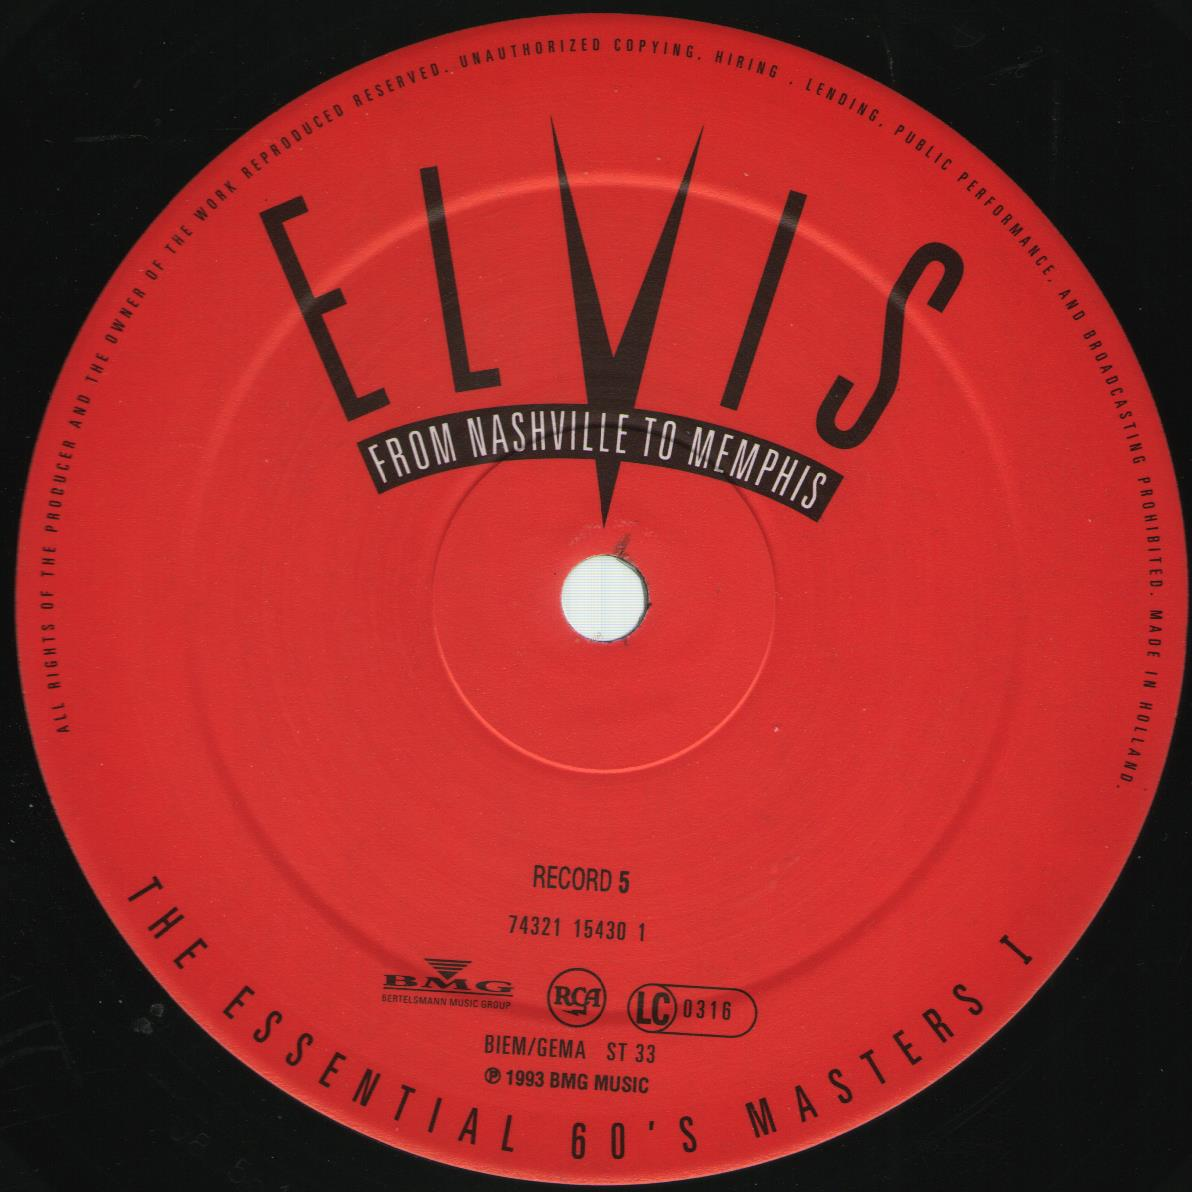 ELVIS - FROM NASHVILLE TO MEMPHIS - THE ESSENTIAL 60'S MASTERS Bild9f0lwu